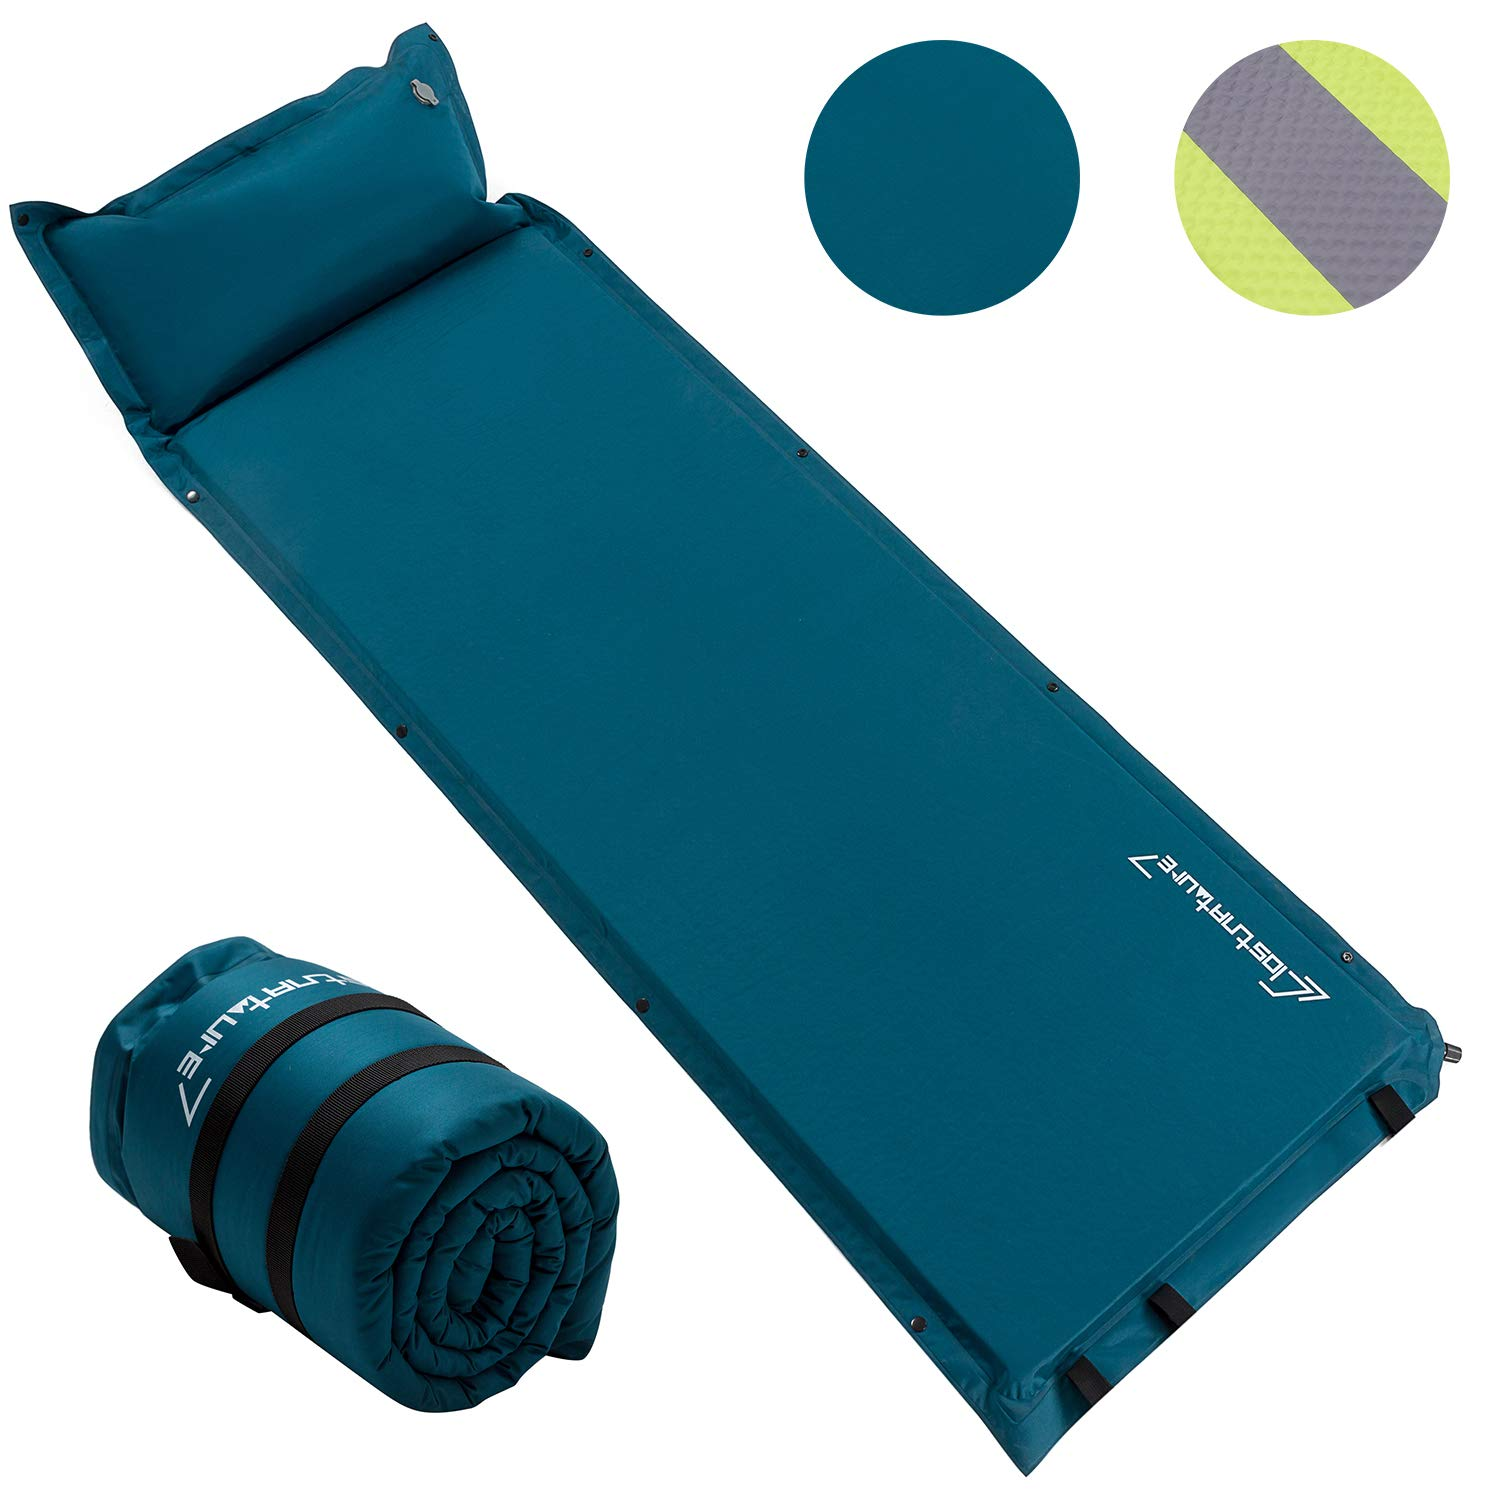 Self Inflating Sleeping Pad for Camping - 1.5 Inch Camping Pad, Lightweight Inflatable Camping Mattress Pad, Insulated Foam Sleeping Mat for Backpacking, Tent, Hammock by Clostnature